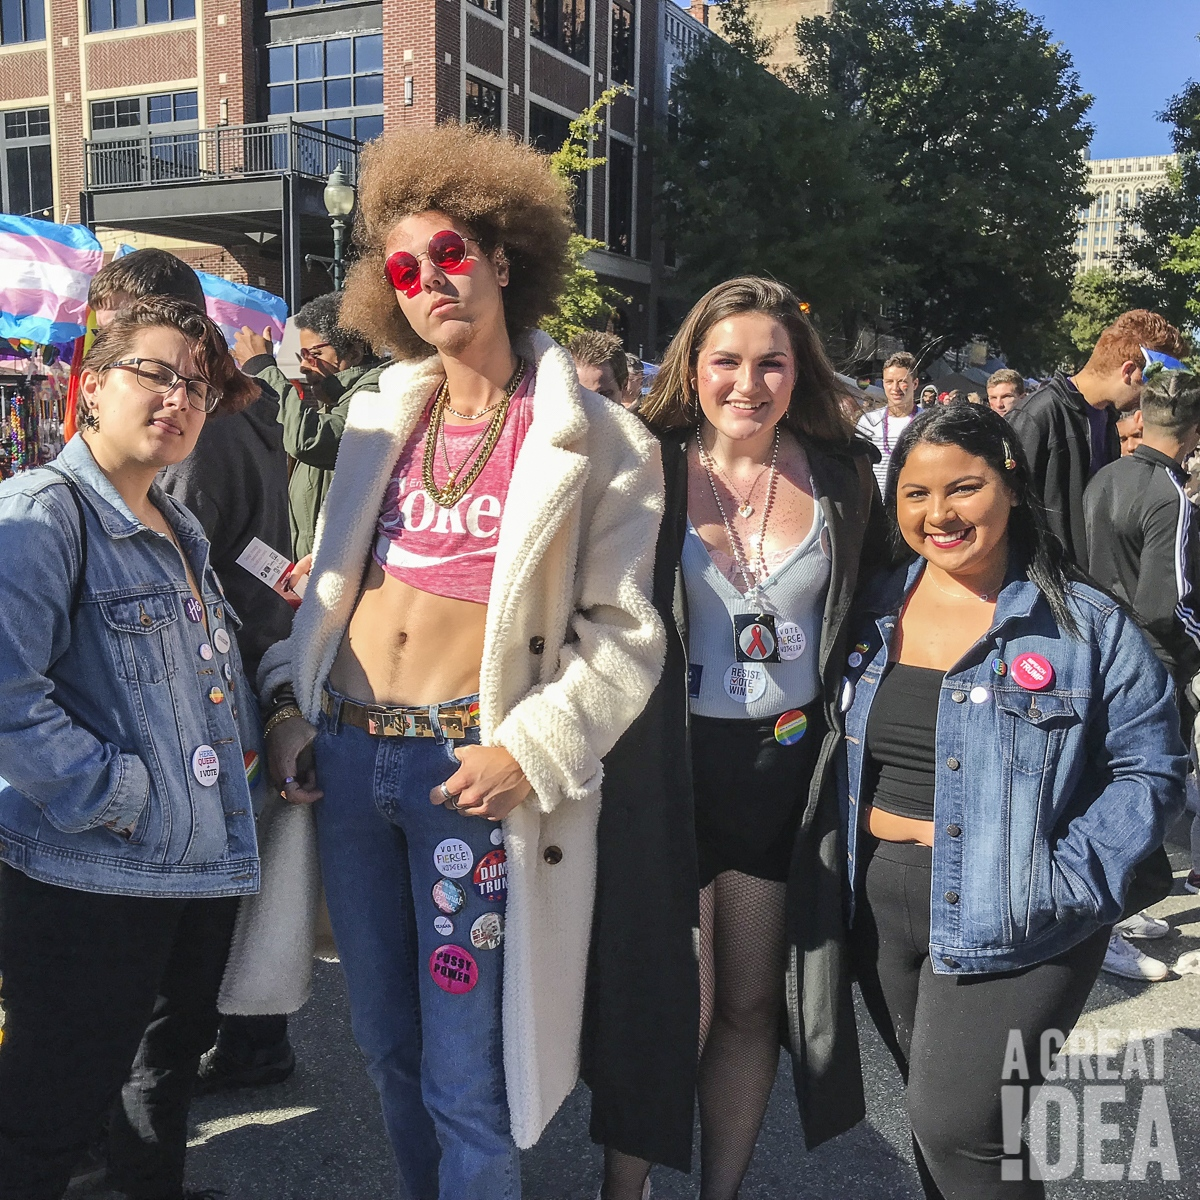 Attendees at Greensboro Pride wear A Great Idea voter pins